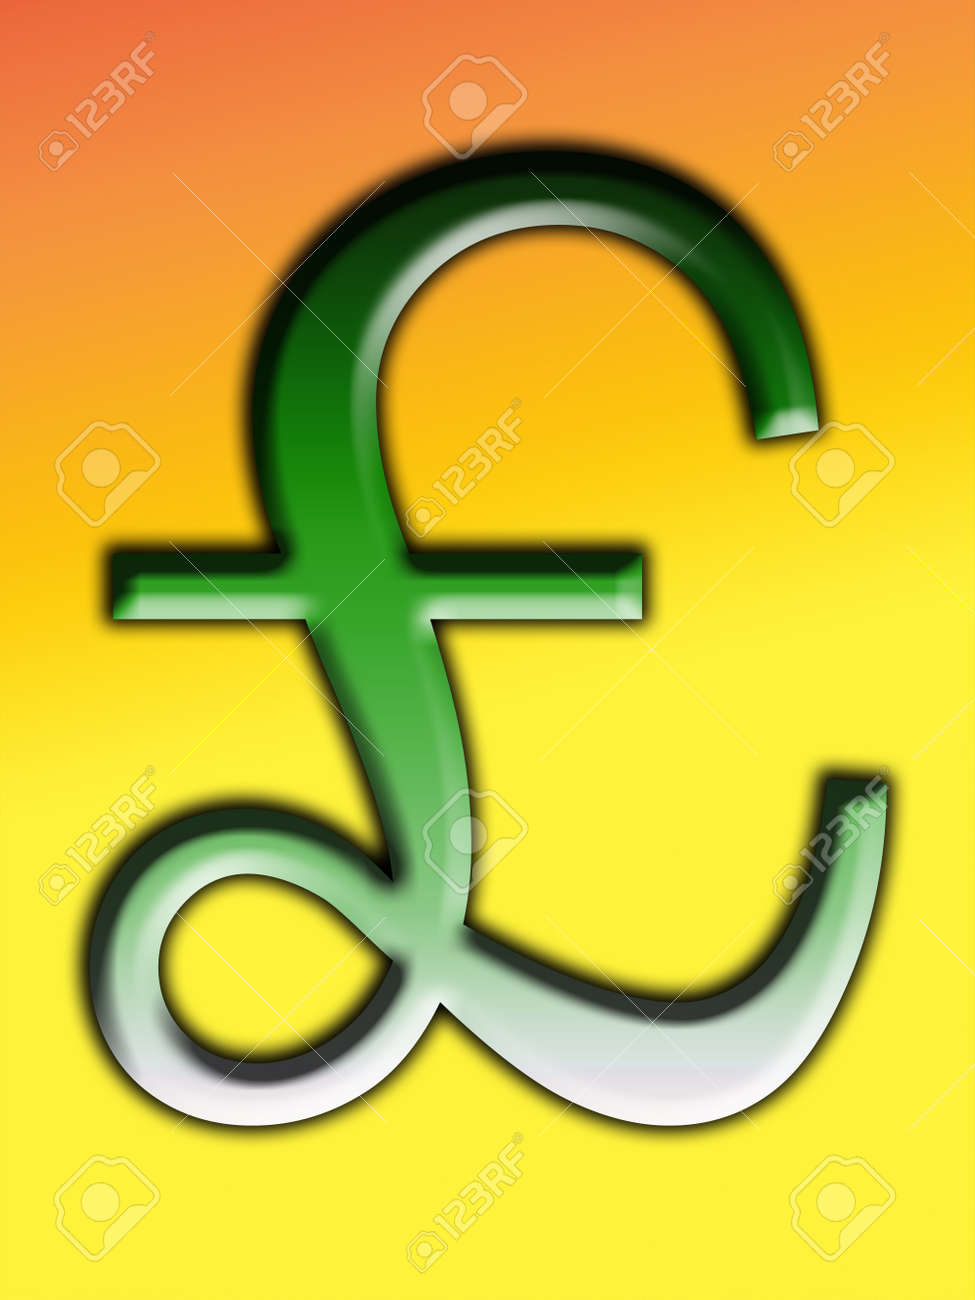 A British Pound Symbol For Money Concepts Stock Photo Picture And